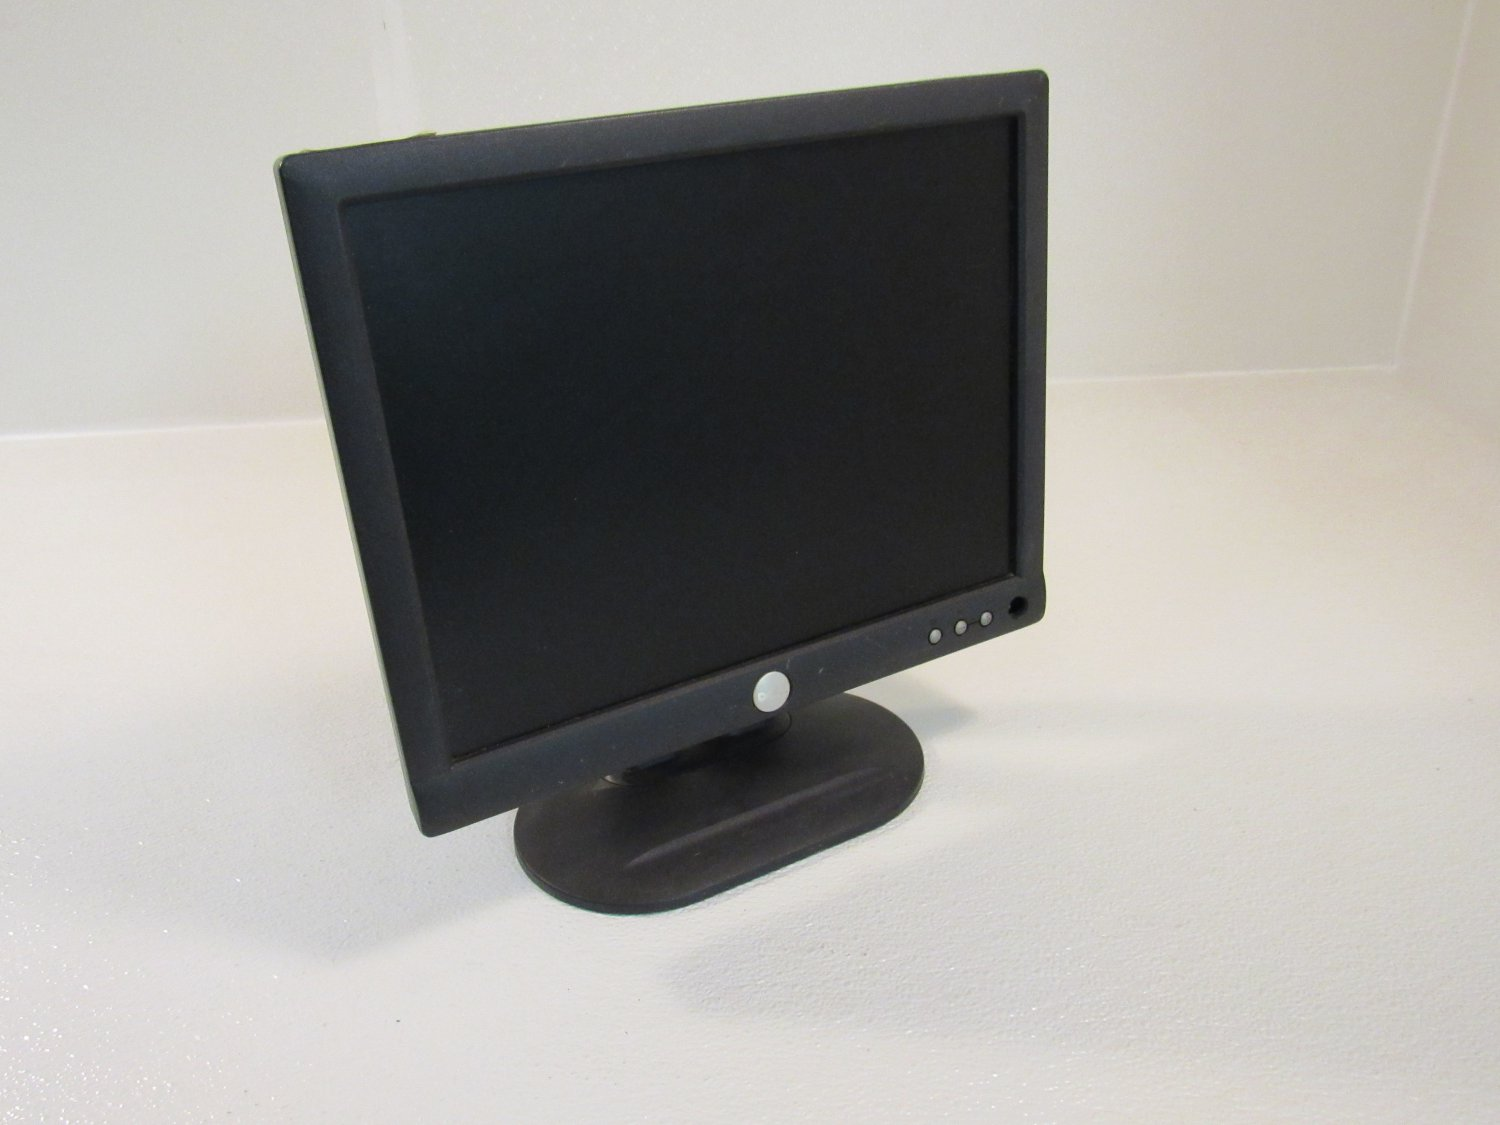 Dell 15in Color Monitor Flat Screen LCD Charcoal 100-240V E153FPf